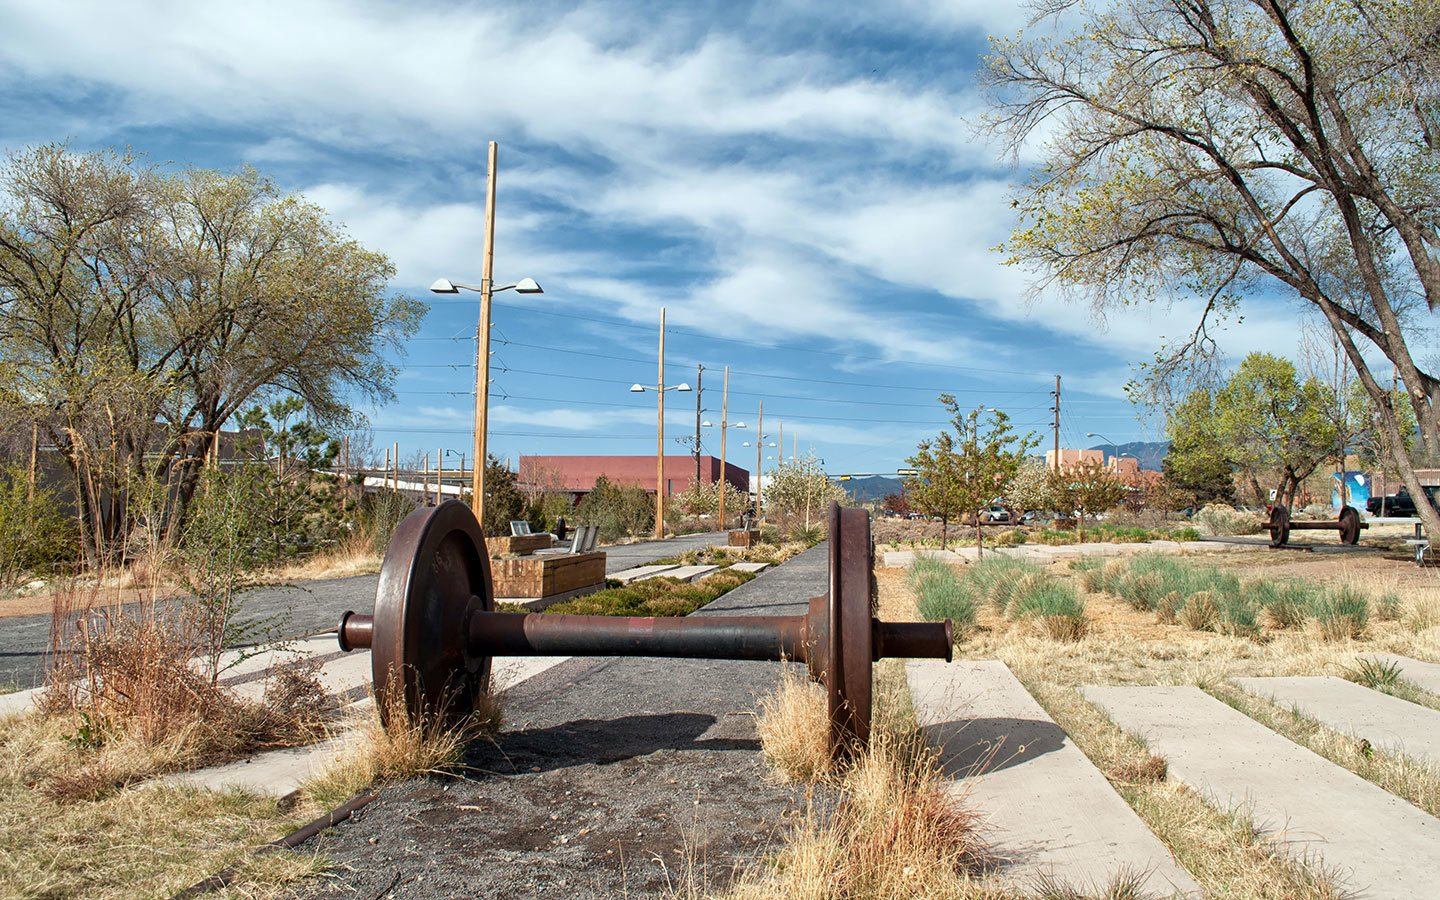 Old railway details in the railyard park, Santa Fe, New Mexico